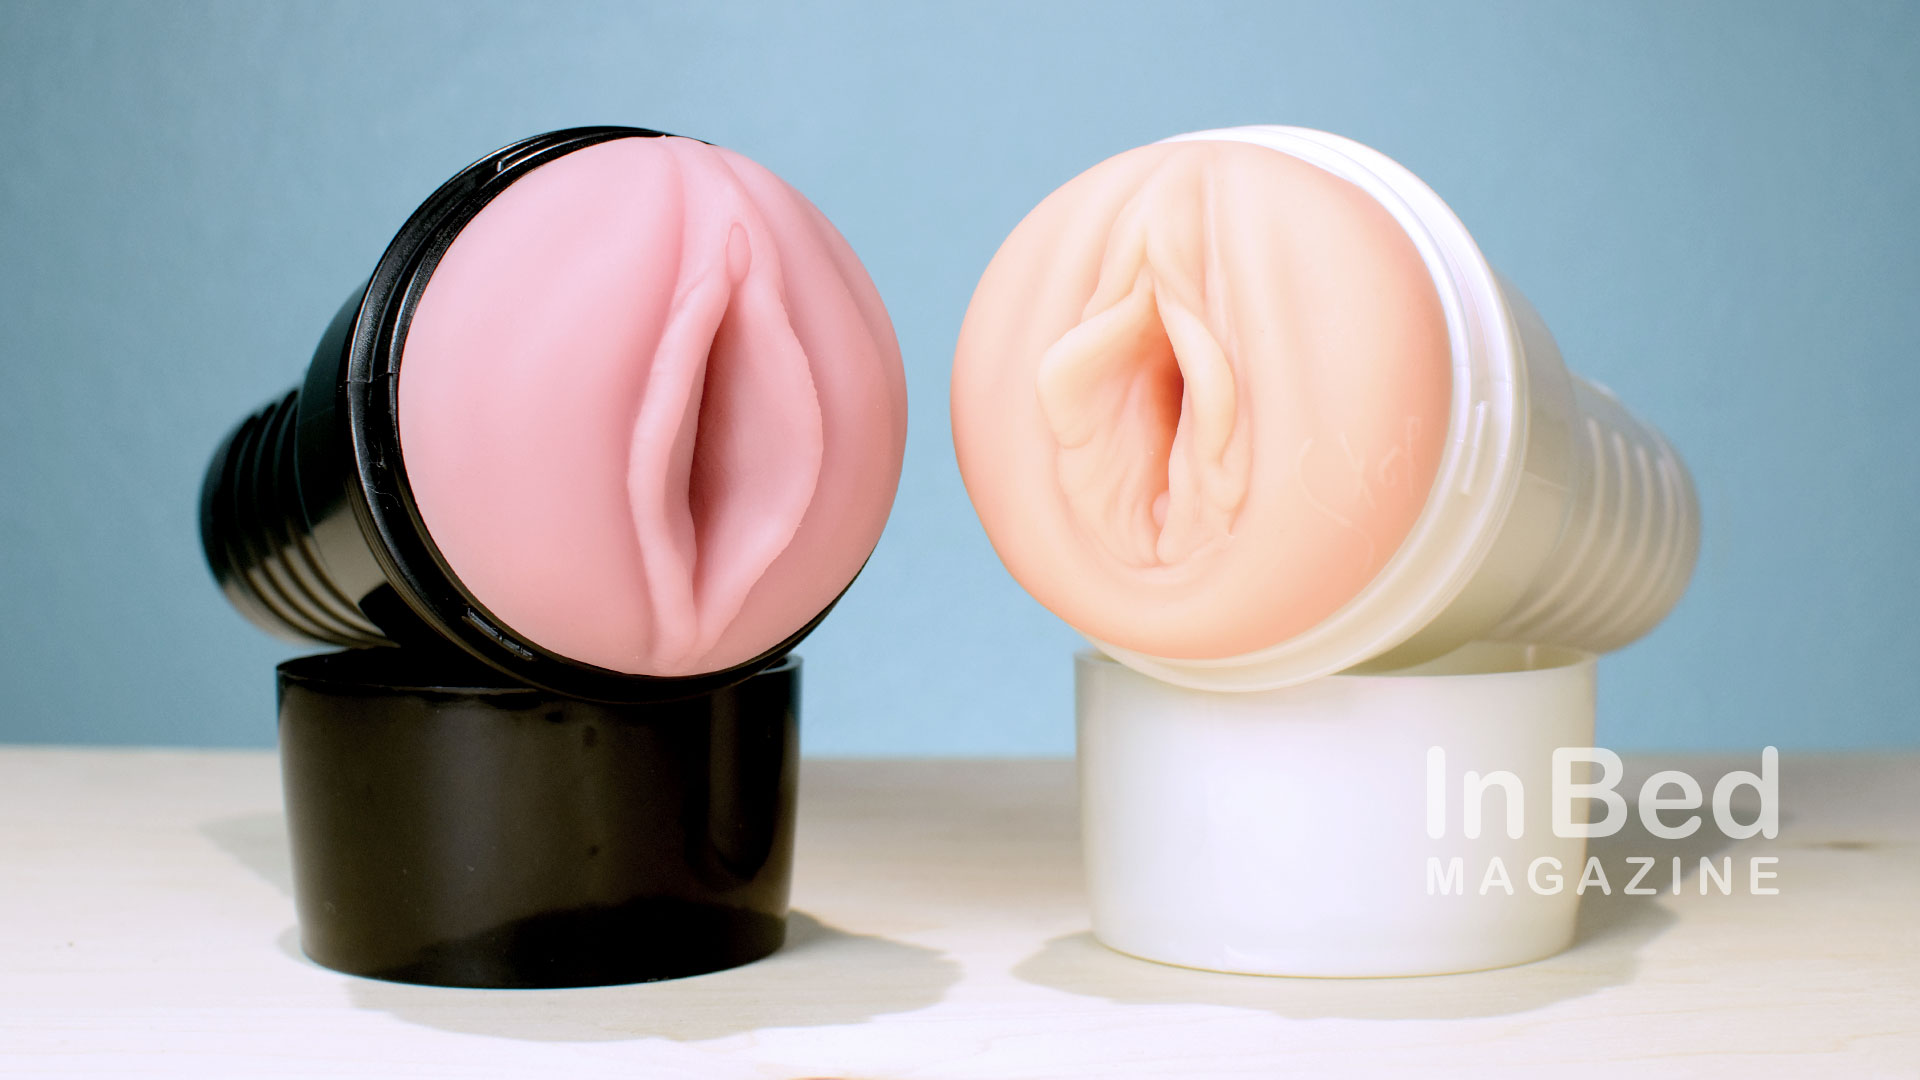 Sell Your Male Pleasure Products Fleshlight